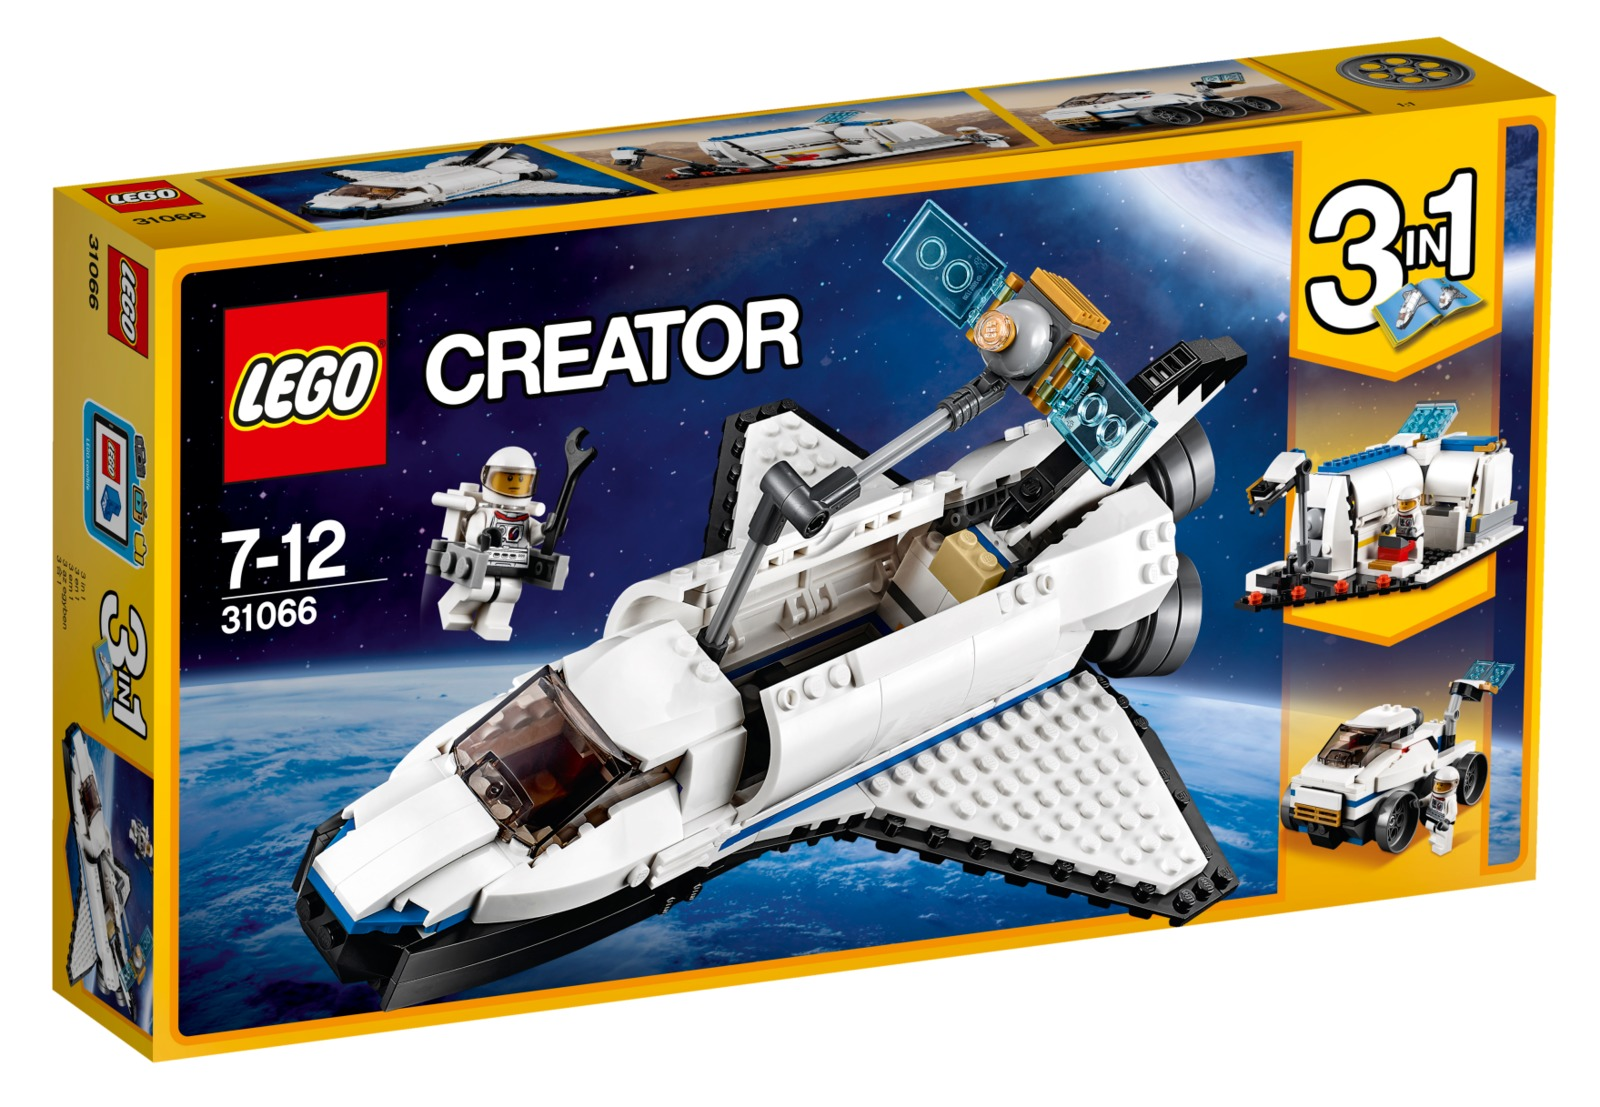 space shuttle explorer lego - photo #15